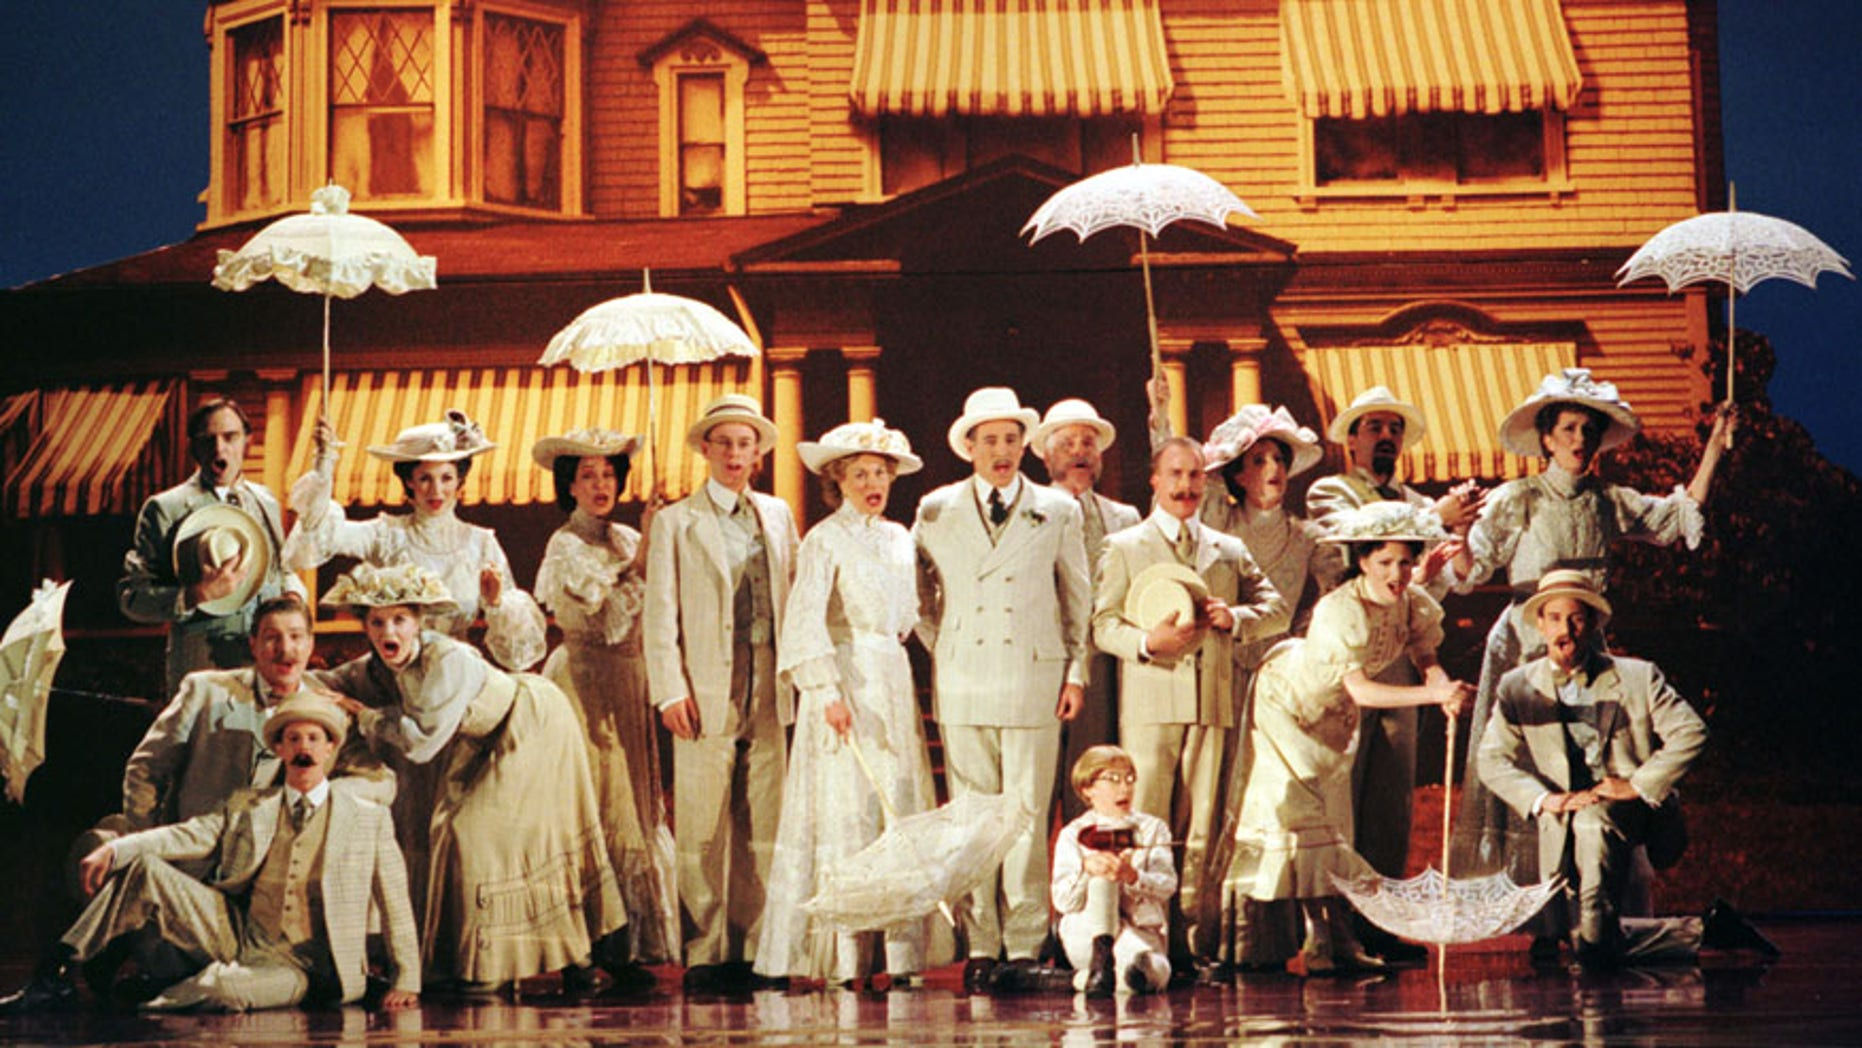 """The cast of the Broadway play """"Ragtime"""" performs a scene from the play, during the 1998 Tony Award Ceremonies at Radio City Music Hall in New York, June 7. """"Ragtime"""" won six awards in the 130th annual Tony Awards show. - RTXI9JY"""